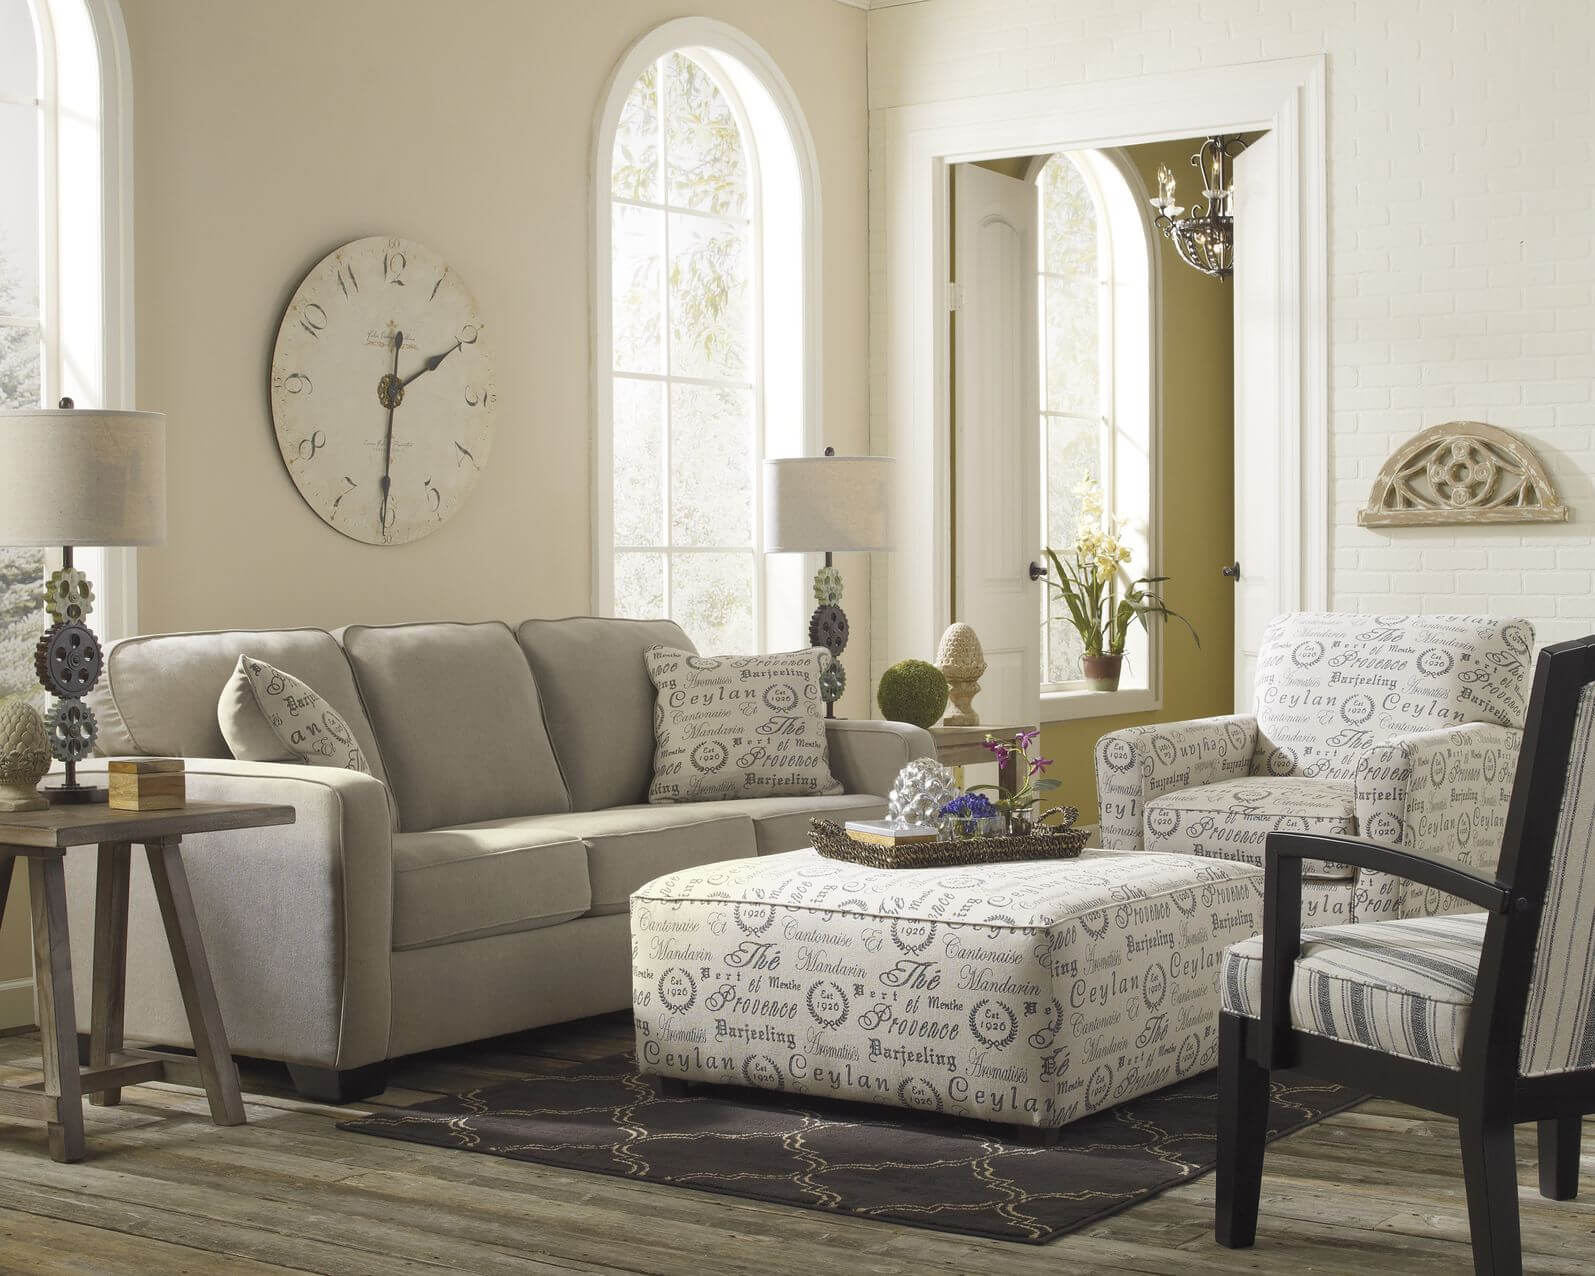 Ordinaire Light Toned Living Room Stands Over Grey Hardwood Flooring, With Neutral  Grey Sofa Next To